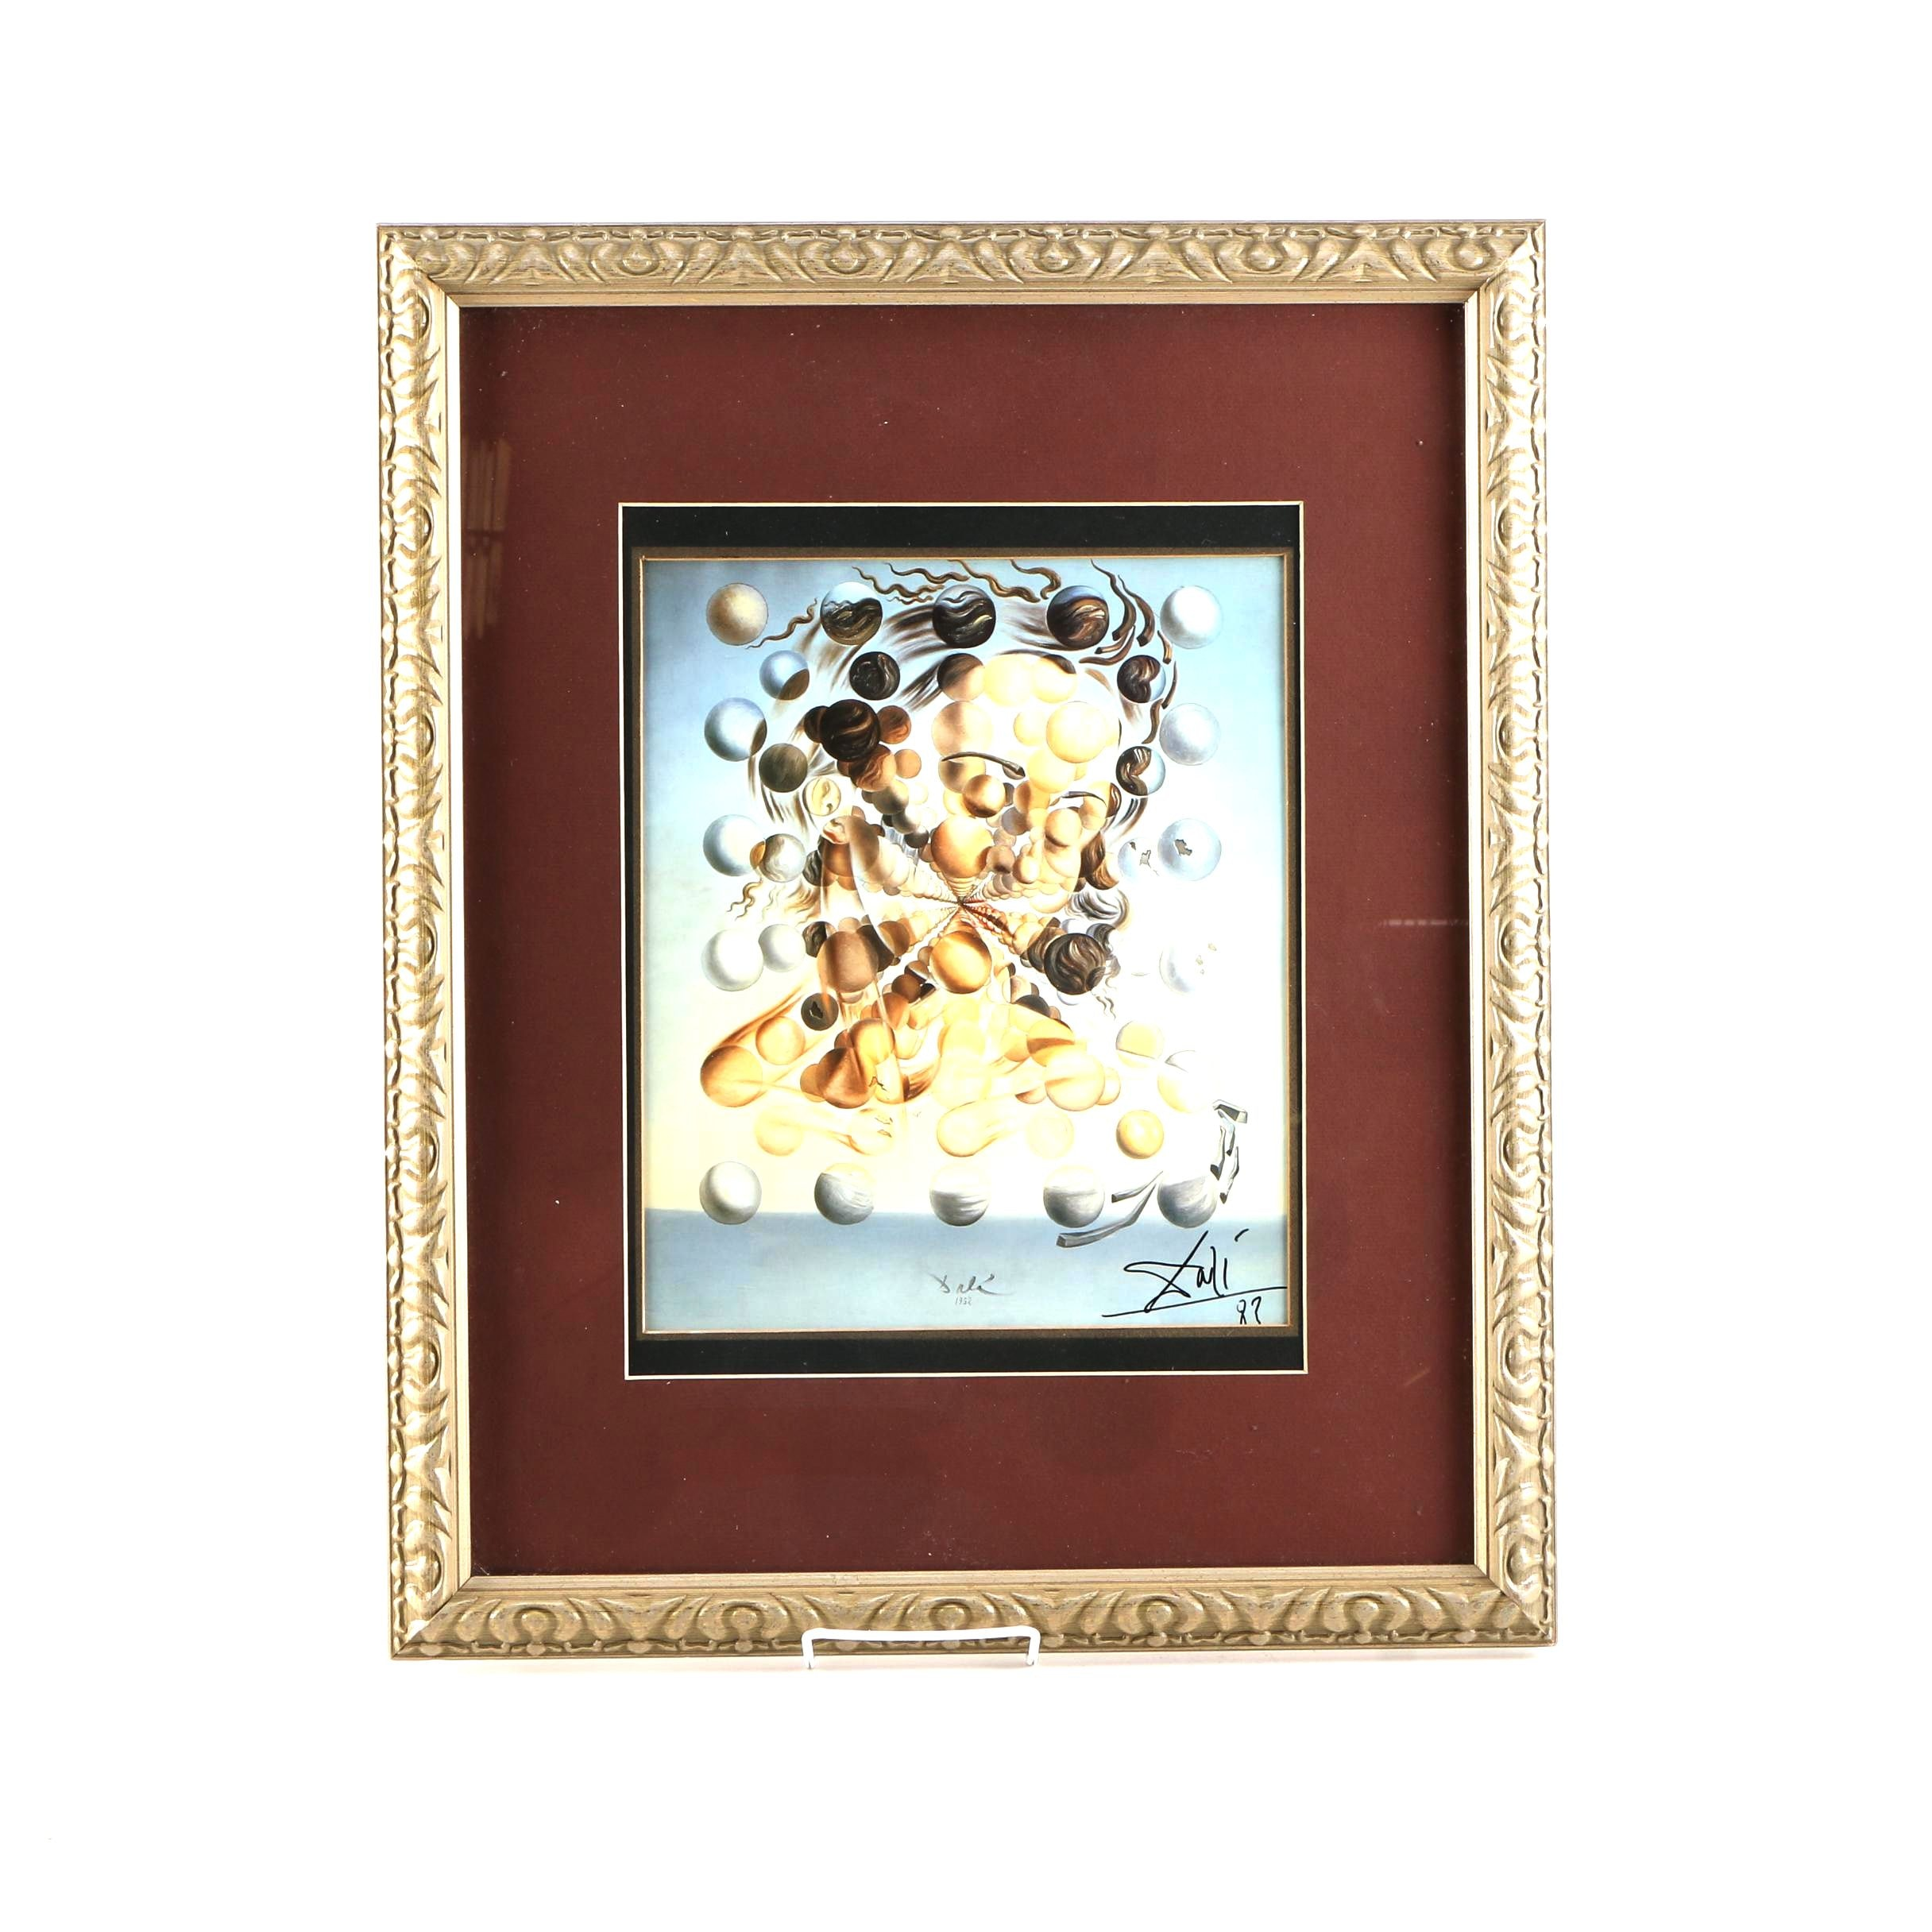 "Dali Signed Offset Lithograph on Paper After ""Galatea of the Spheres"""